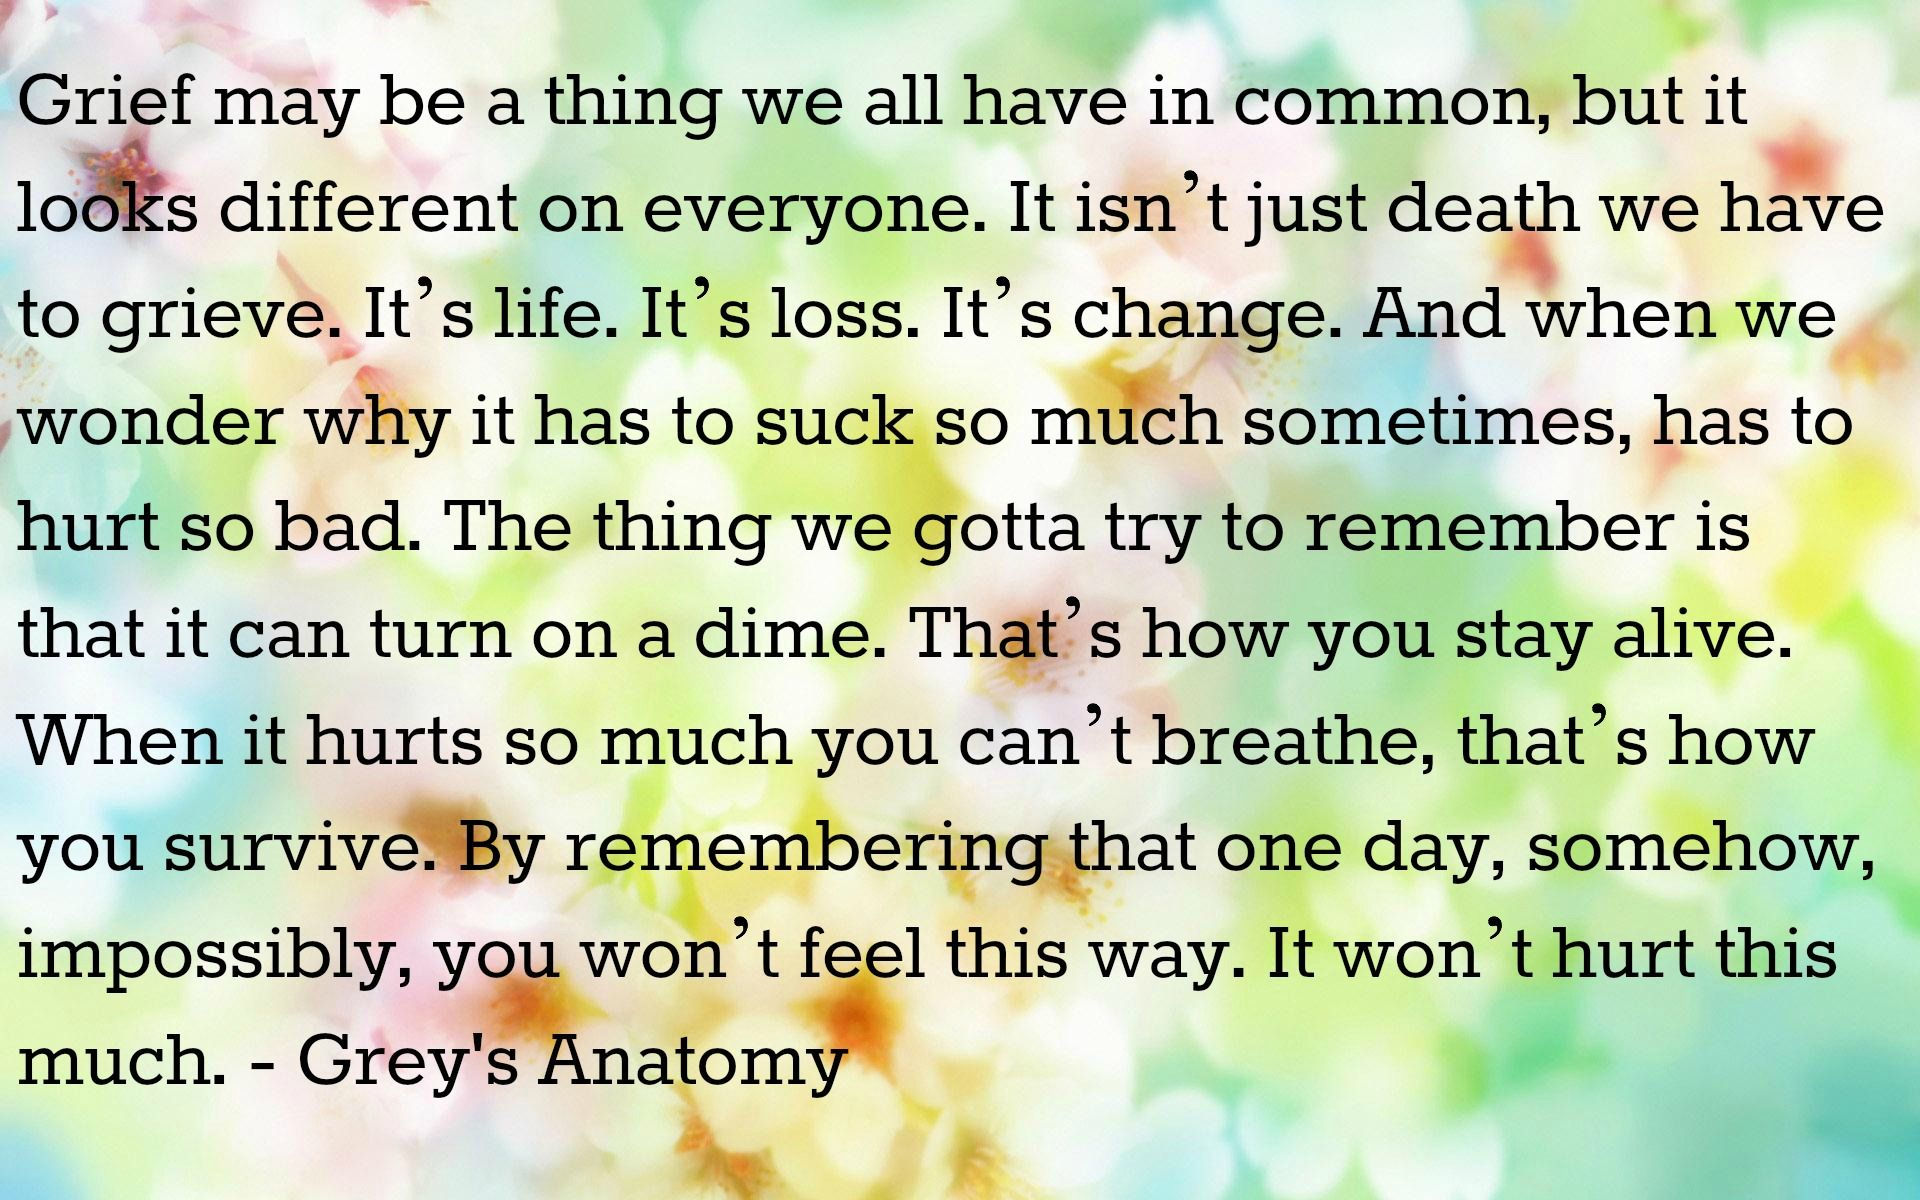 #grief #greysanatomy #quote